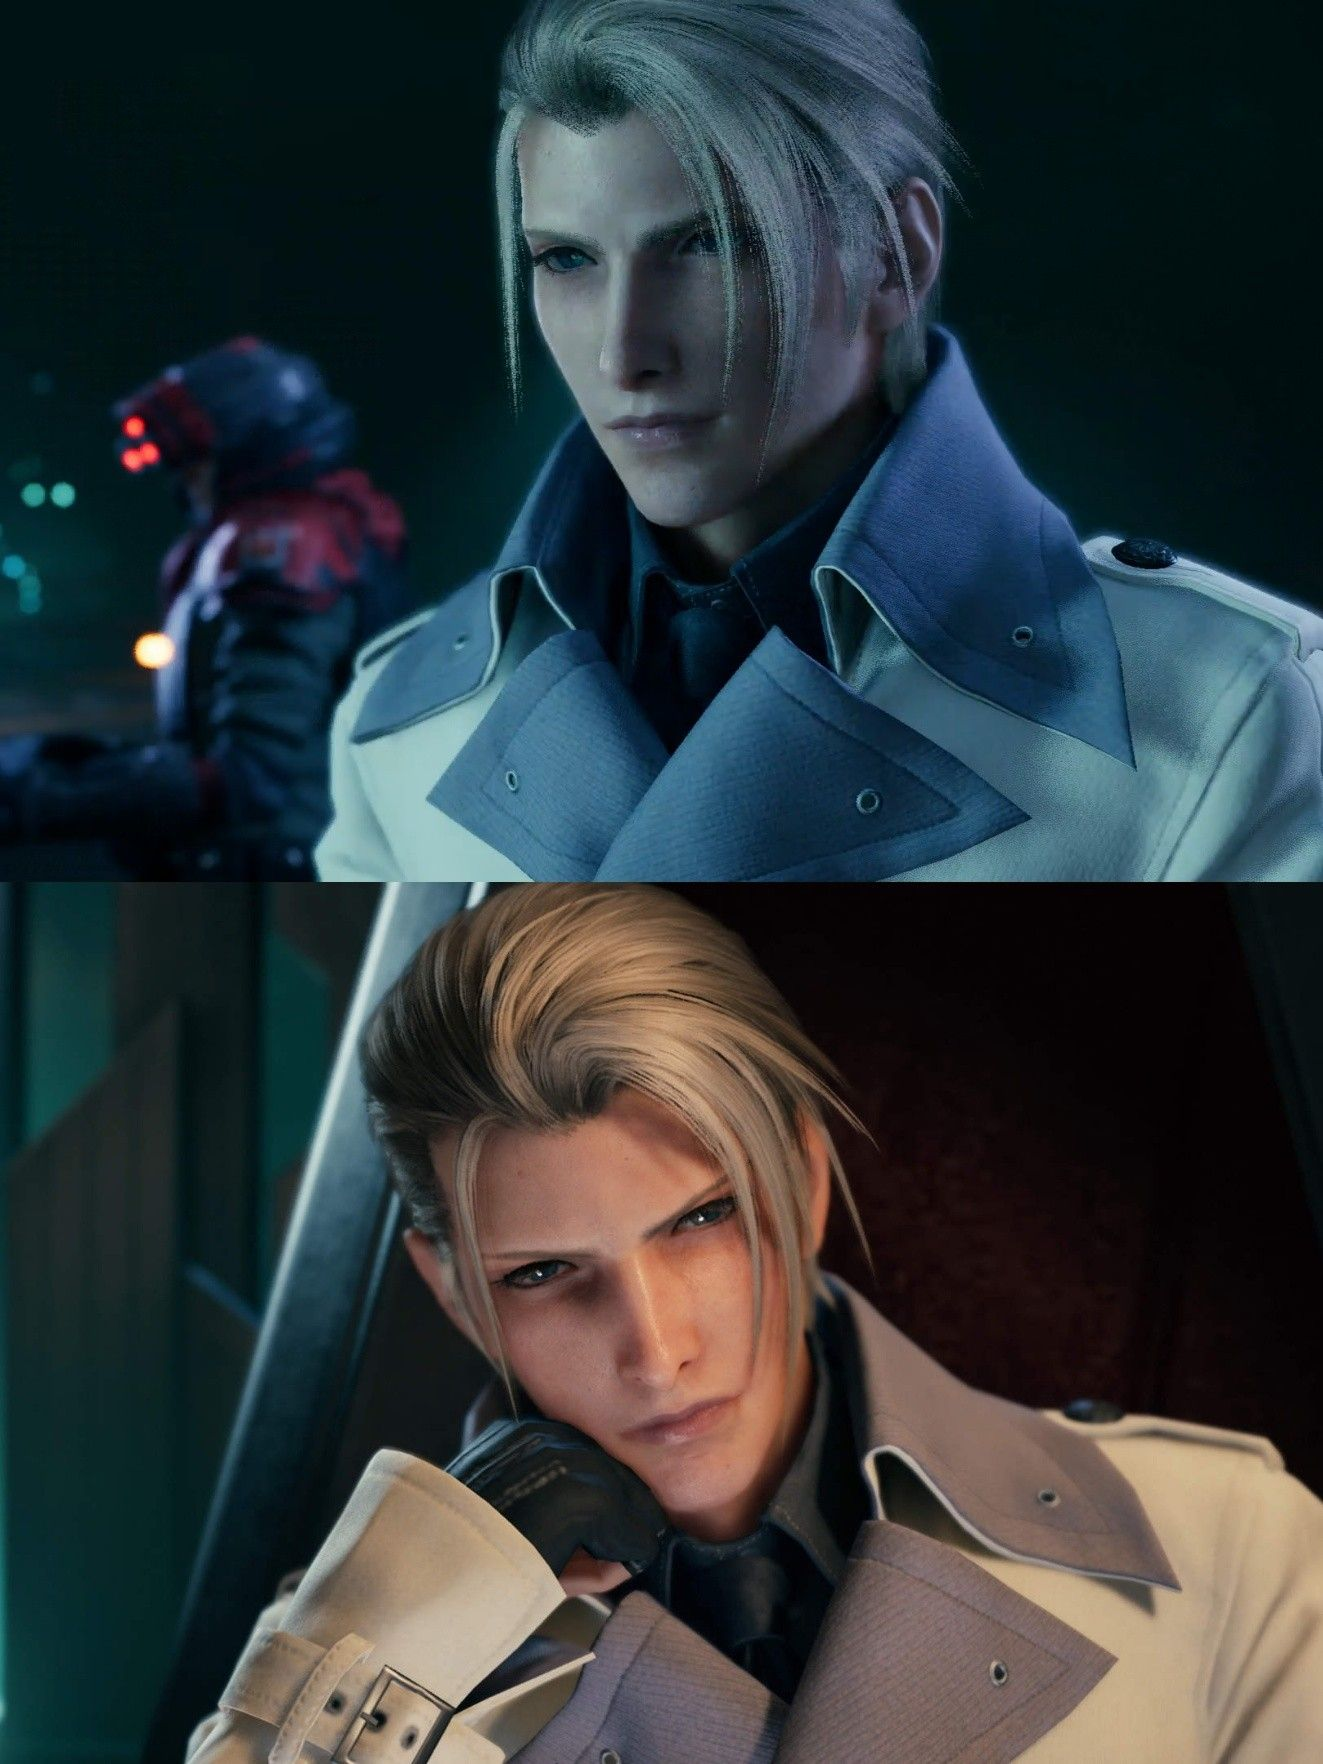 Pin By Muhwei On Final Fantasy Vii Final Fantasy Vii Final Fantasy Vii Remake Final Fantasy Xii